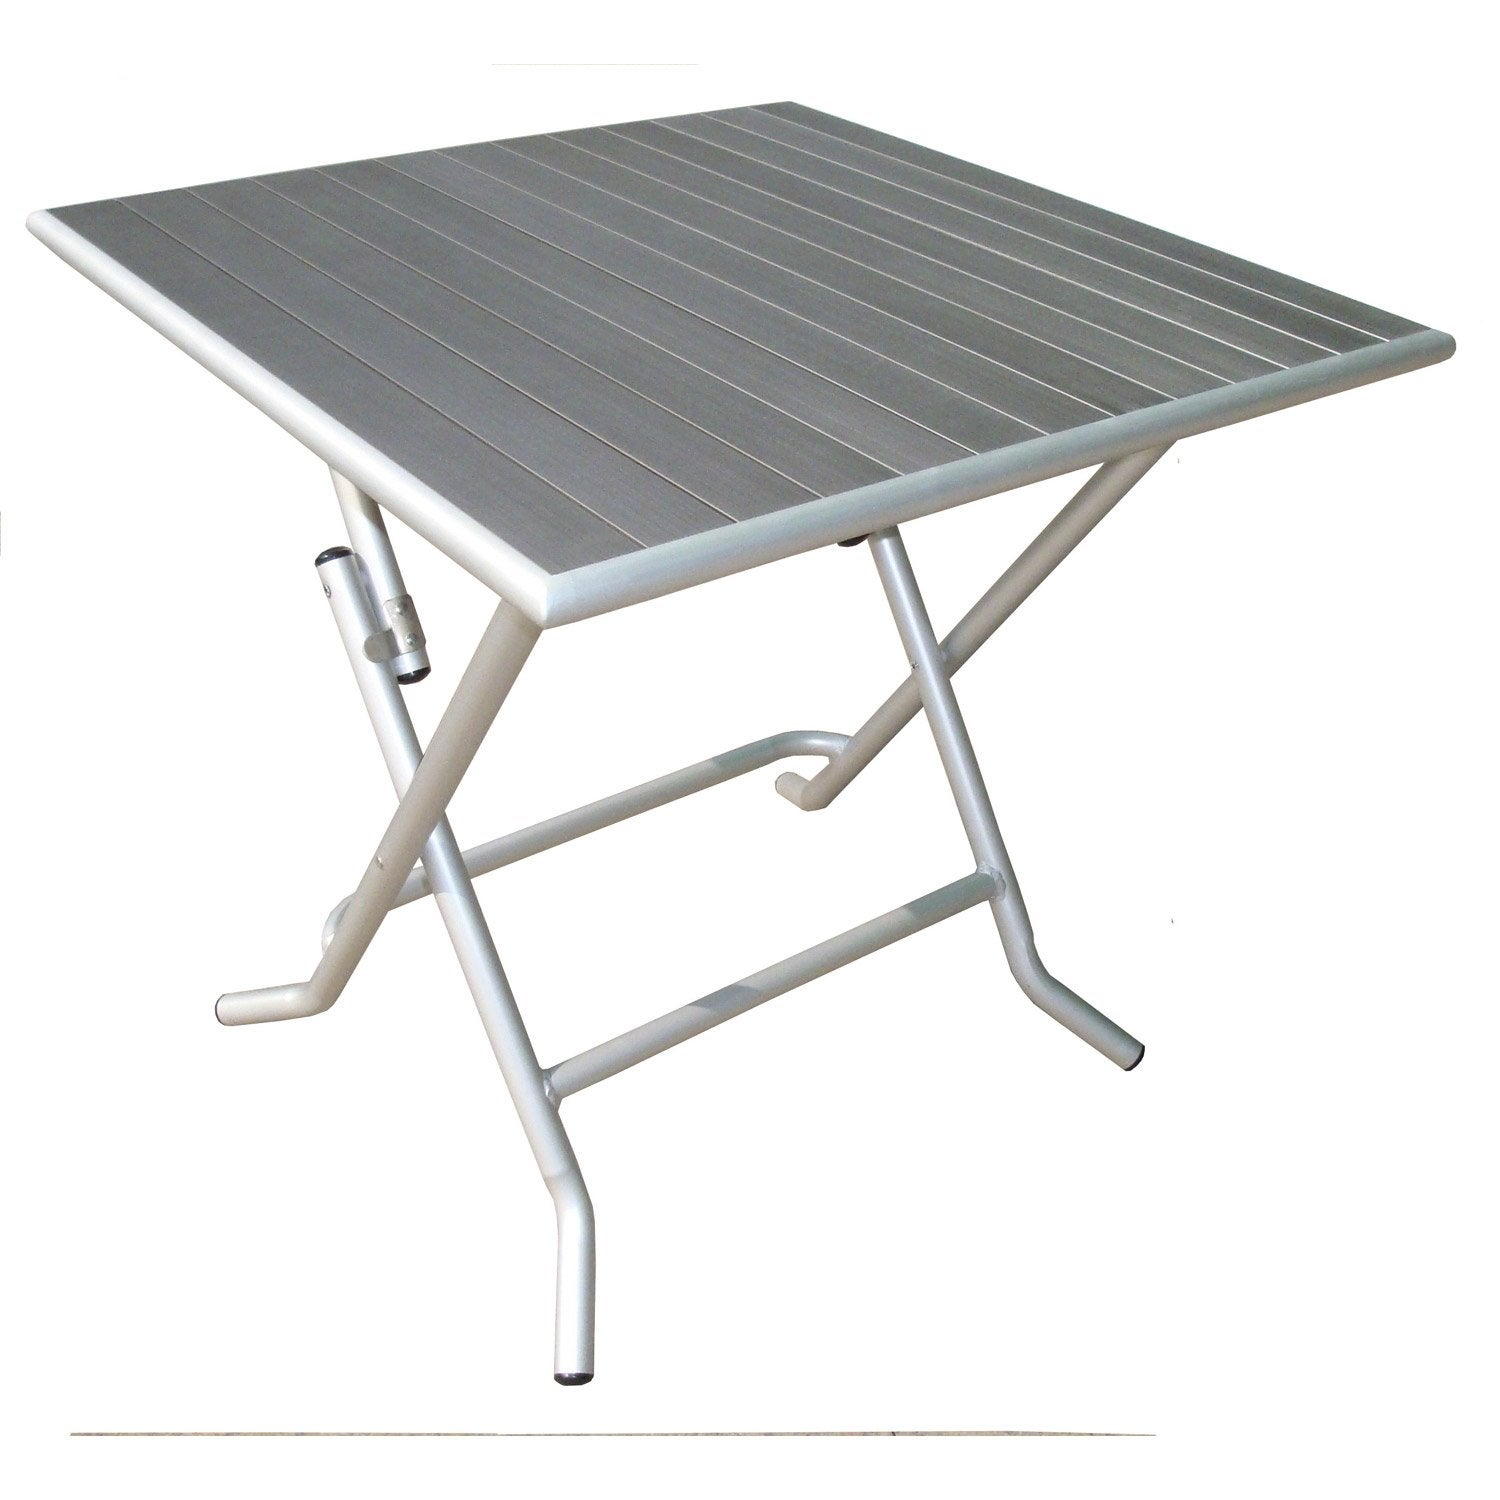 Table de jardin m tal leroy merlin for Leroy merlin table jardin